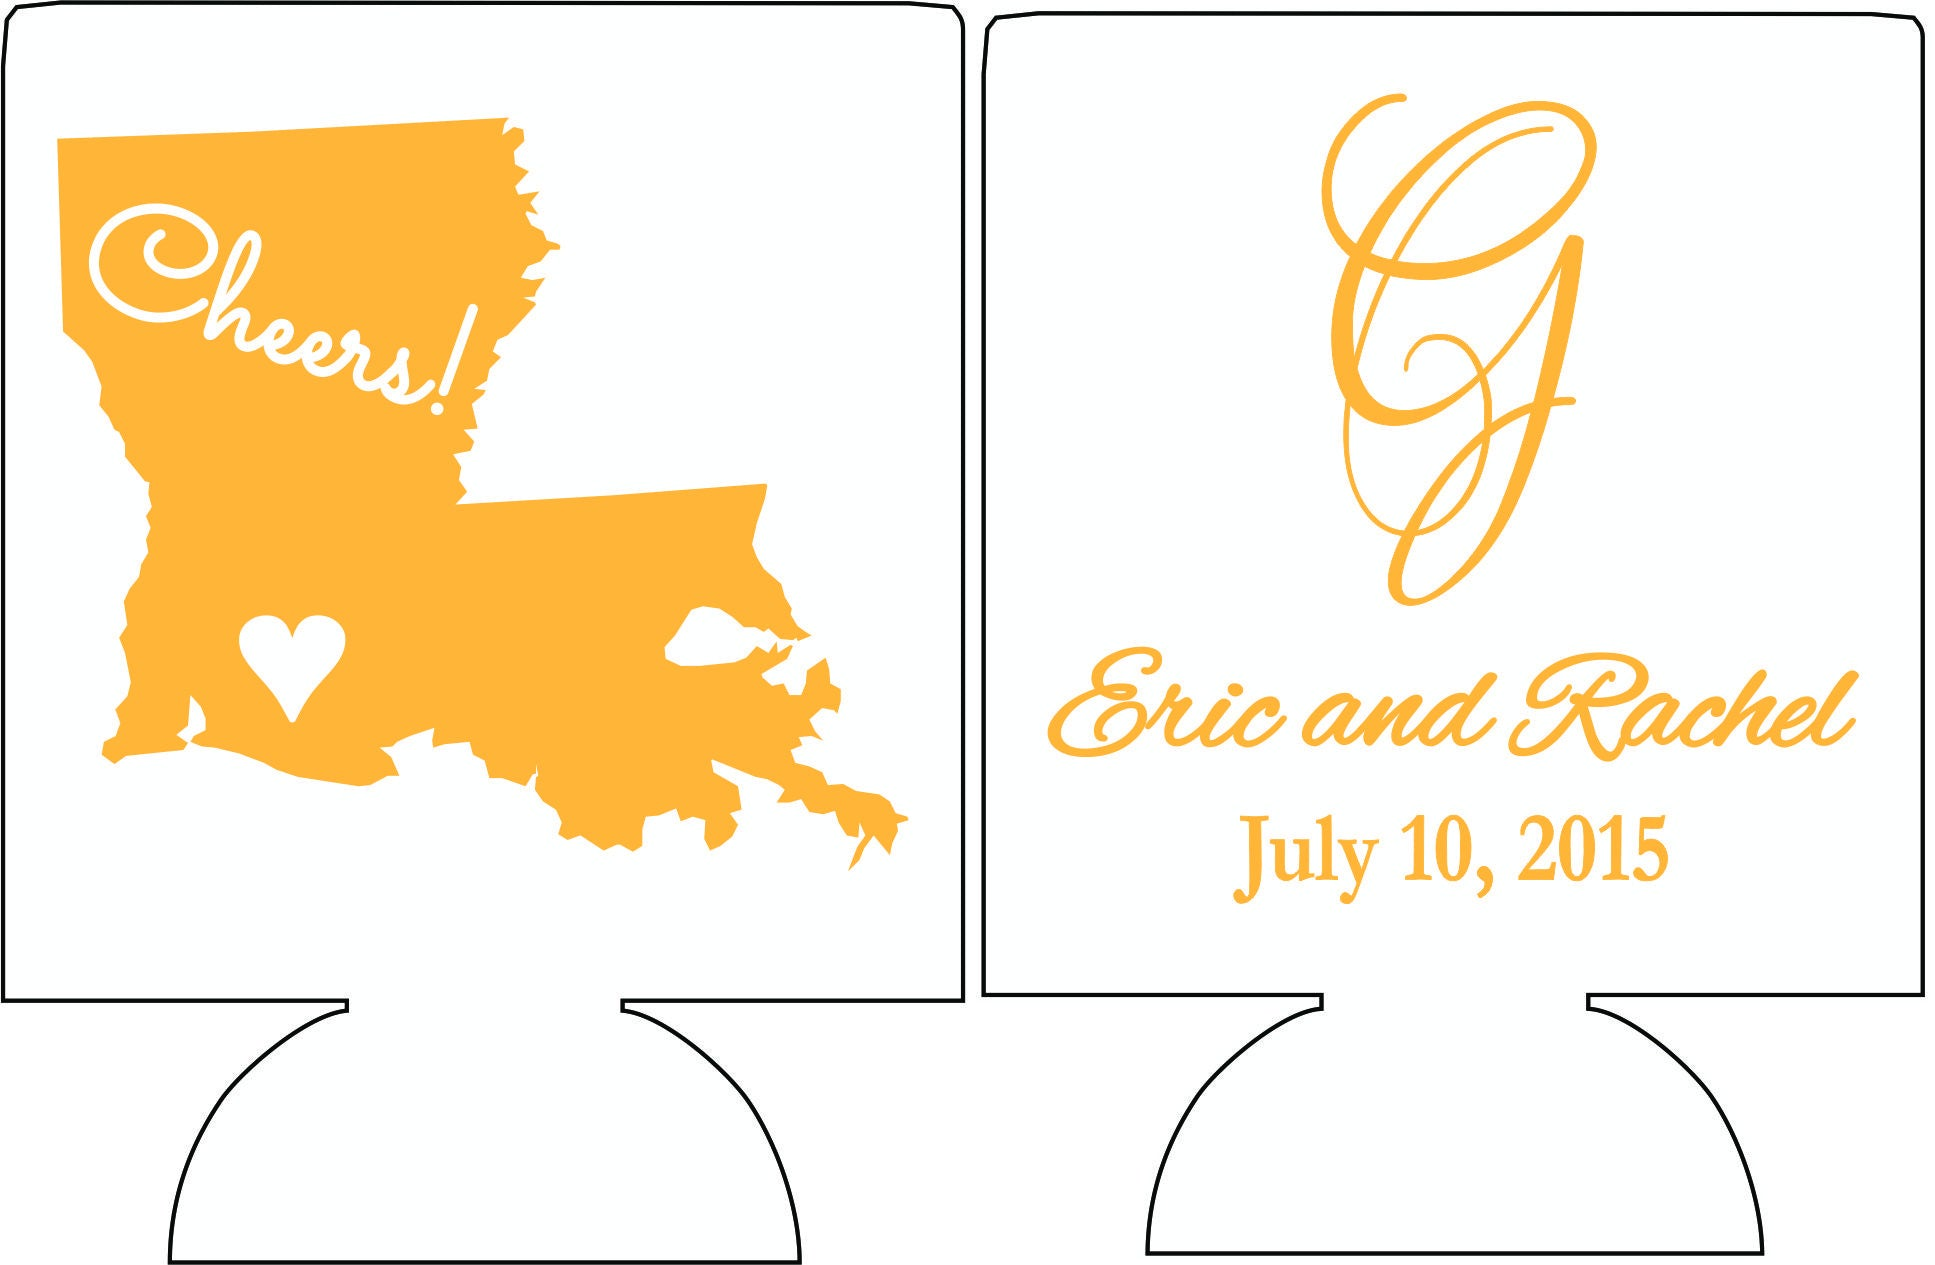 cheers Louisiana monogram wedding koozies Can Coolers - OdysseyCustom